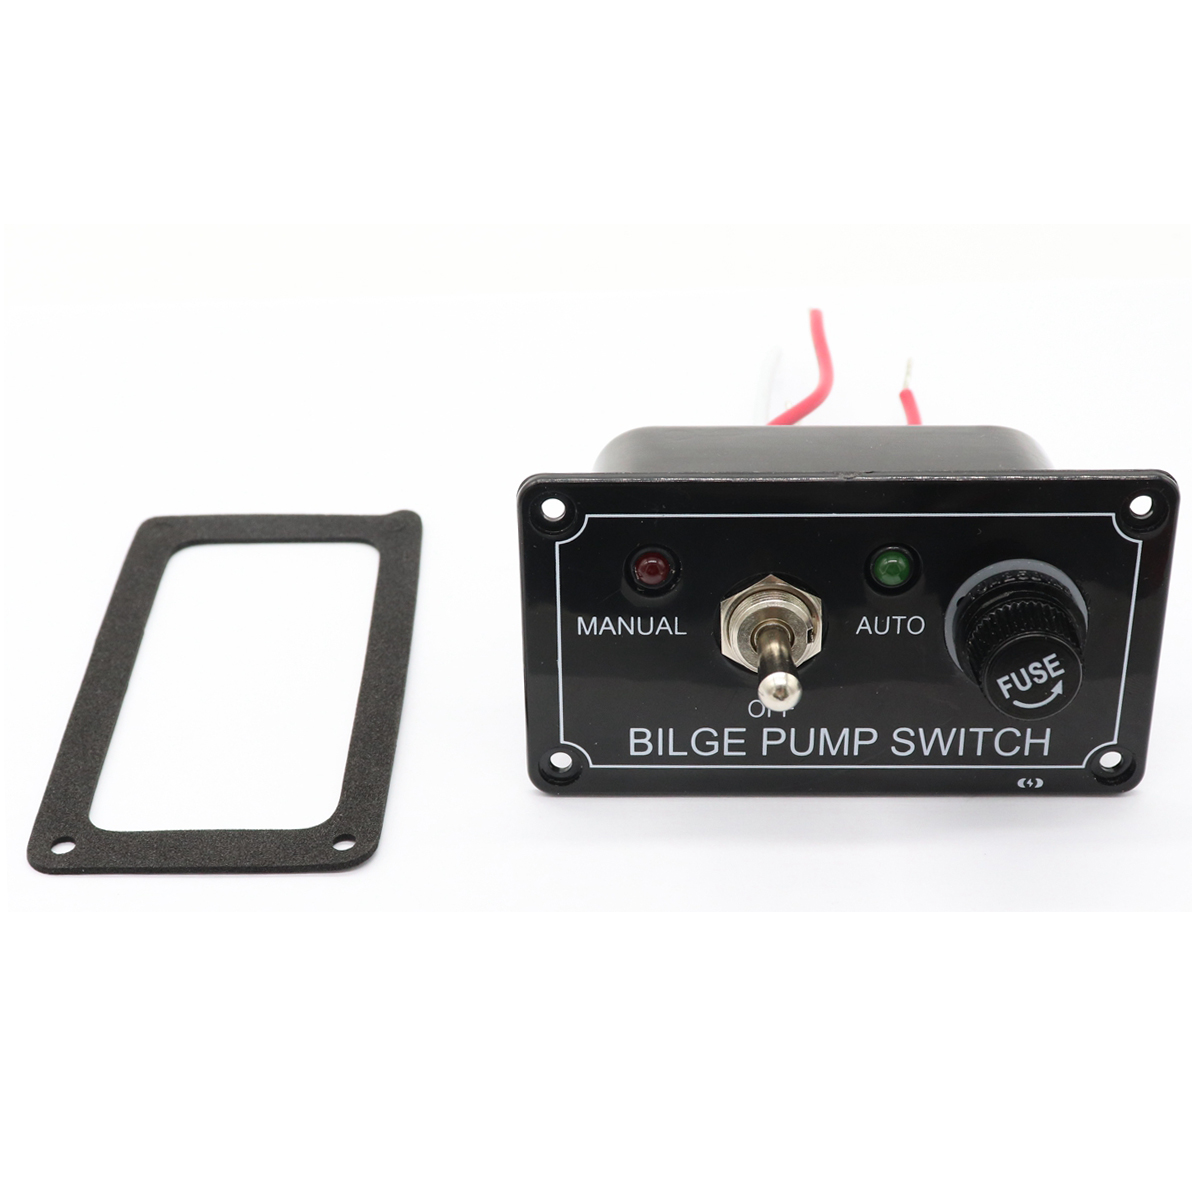 12V LED Indicator Bilge Pump Switch Panel Housing 3 Way Panel Manual / Off / Auto RV Marine Boat